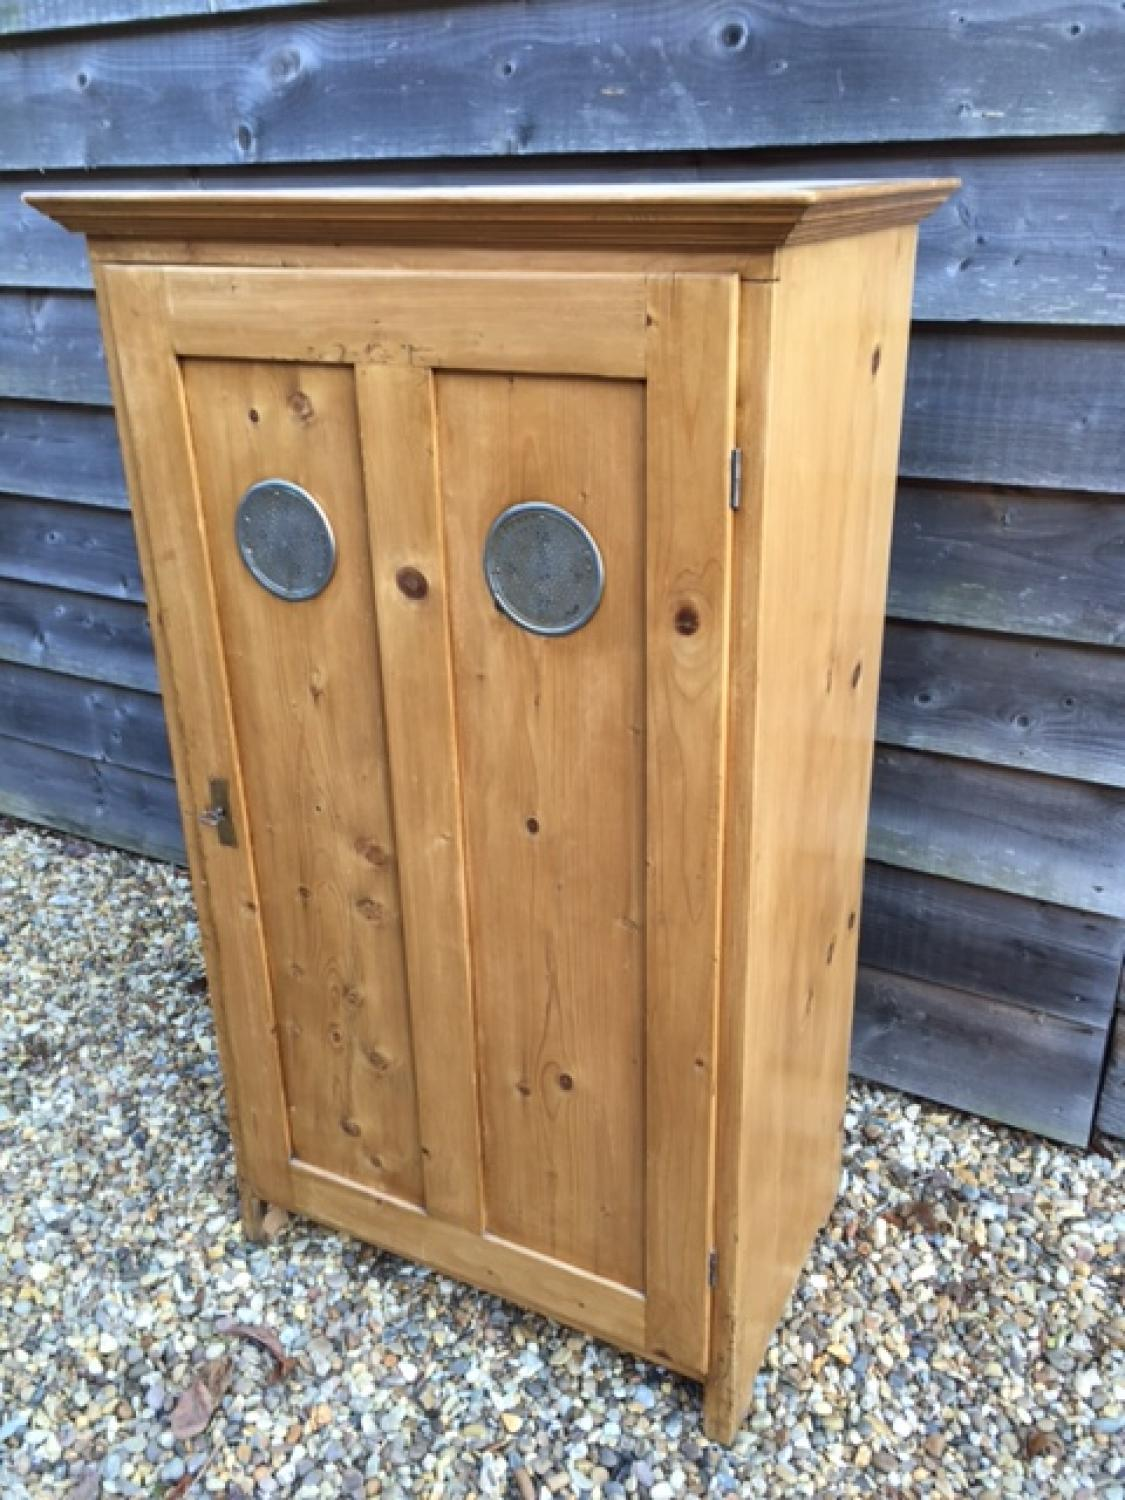 Antique Larder Cupboard - Antique Larder Cupboard Antique Furniture